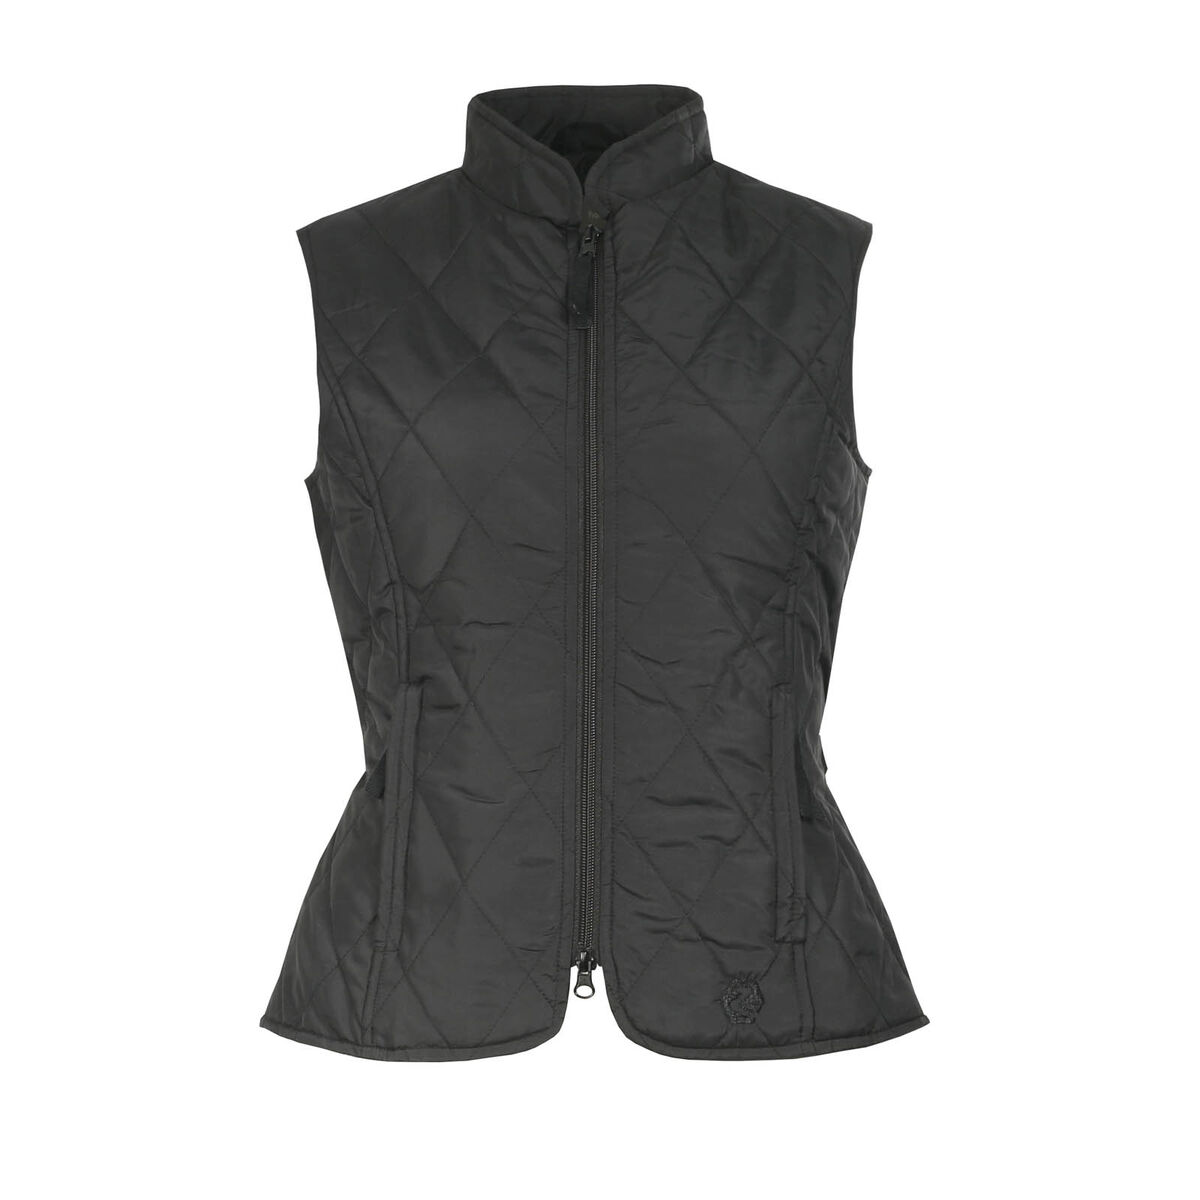 Find a great selection of vests for women at hitseparatingfiletransfer.tk Select from wool vests, down vests and more from the best brands, plus read customer reviews. Free shipping & returns.